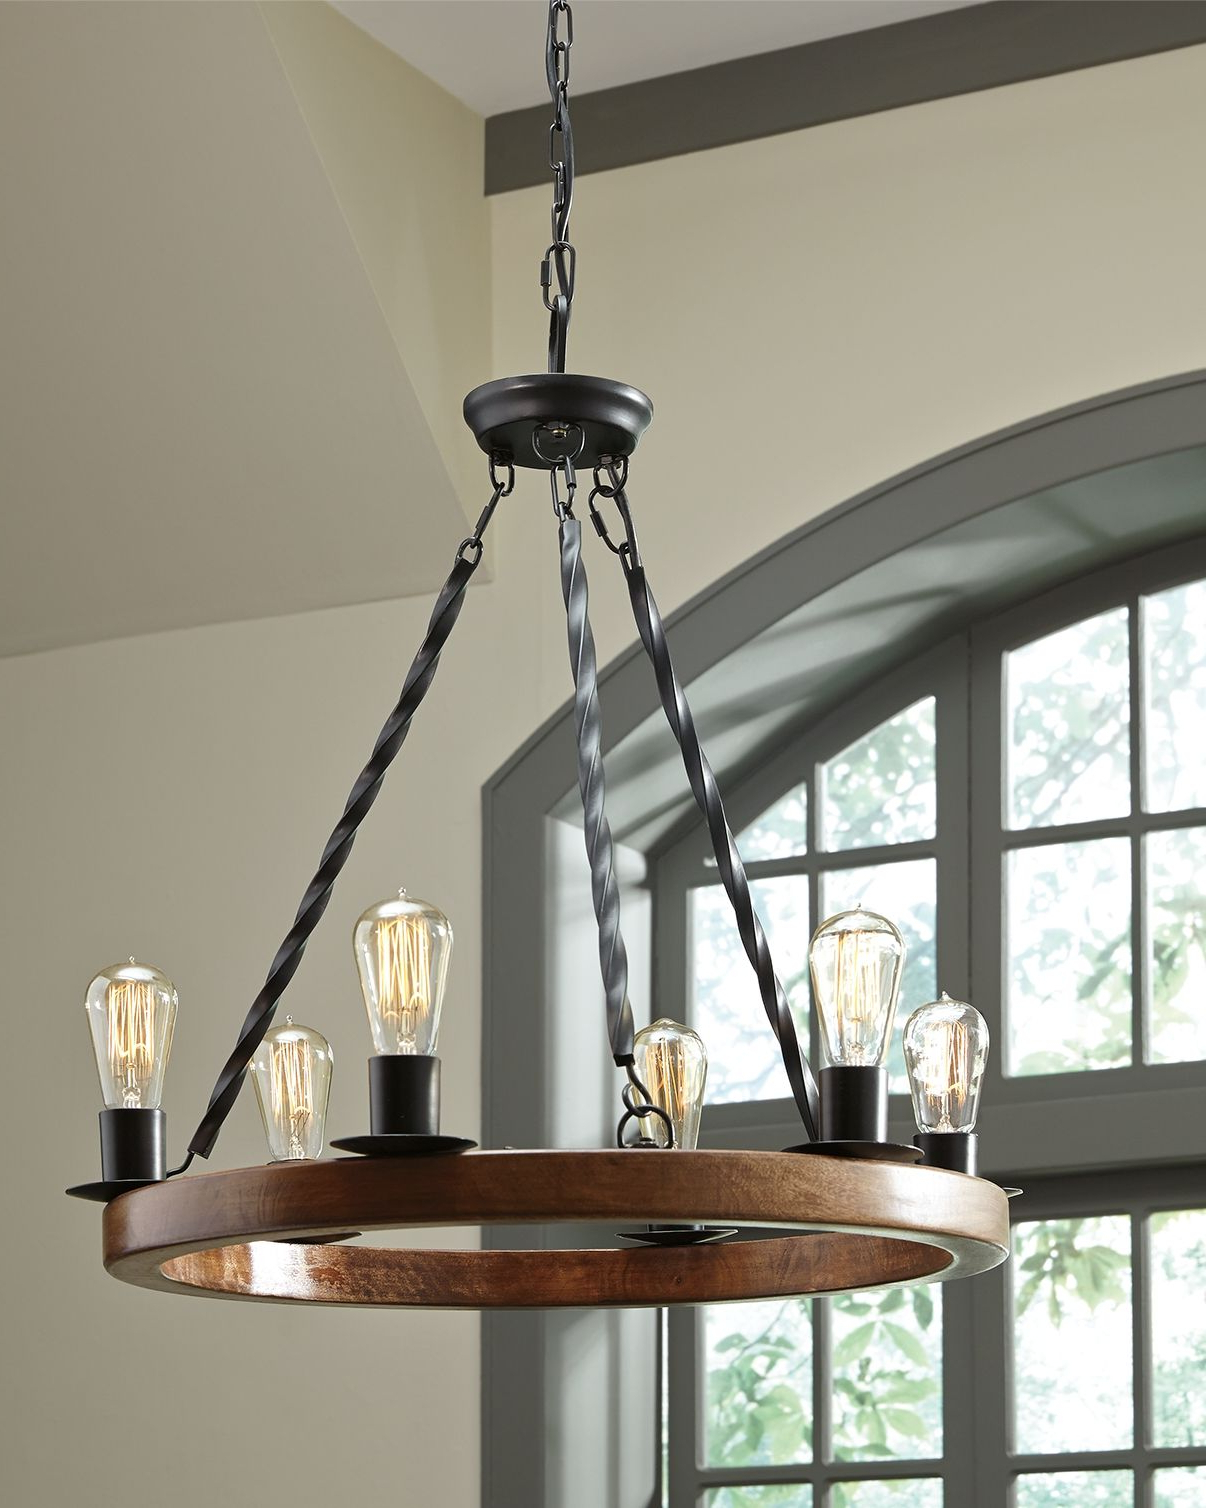 Aadhya 5 Light Drum Chandeliers For Well Liked Plato Pendant Light, Brown/black (View 25 of 25)